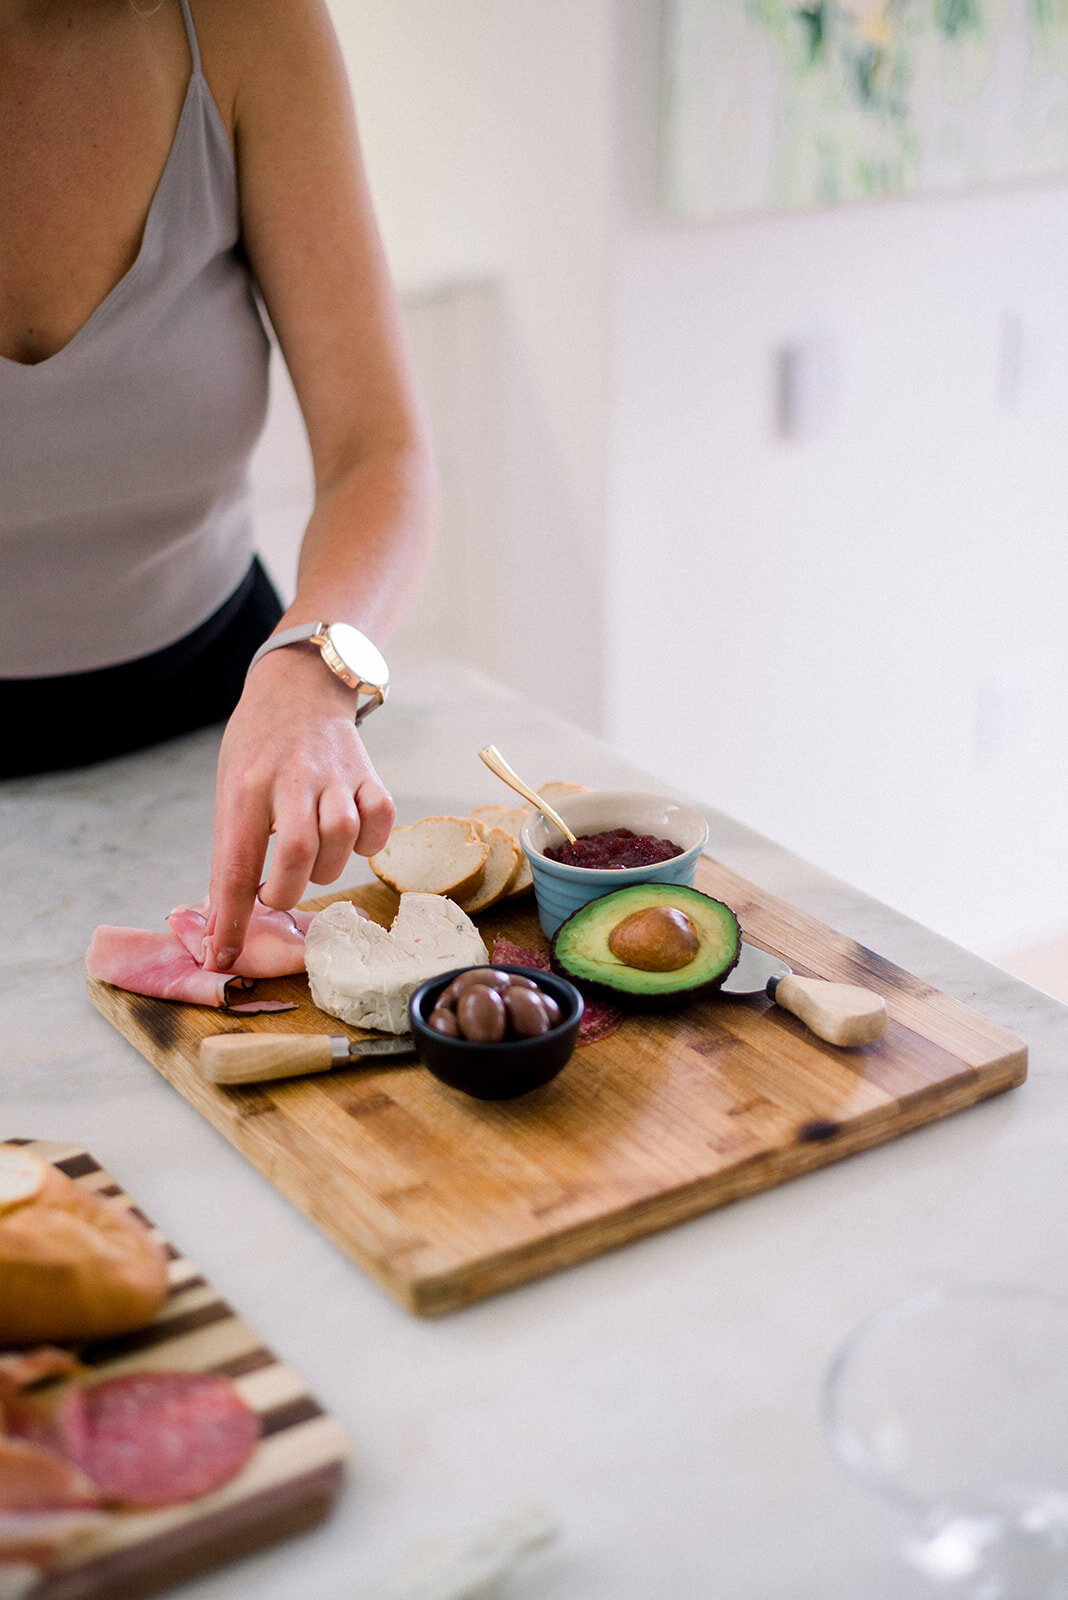 8 Staple Ingredients For The Perfect Charcuterie Board - on the Bronte Bride Blog